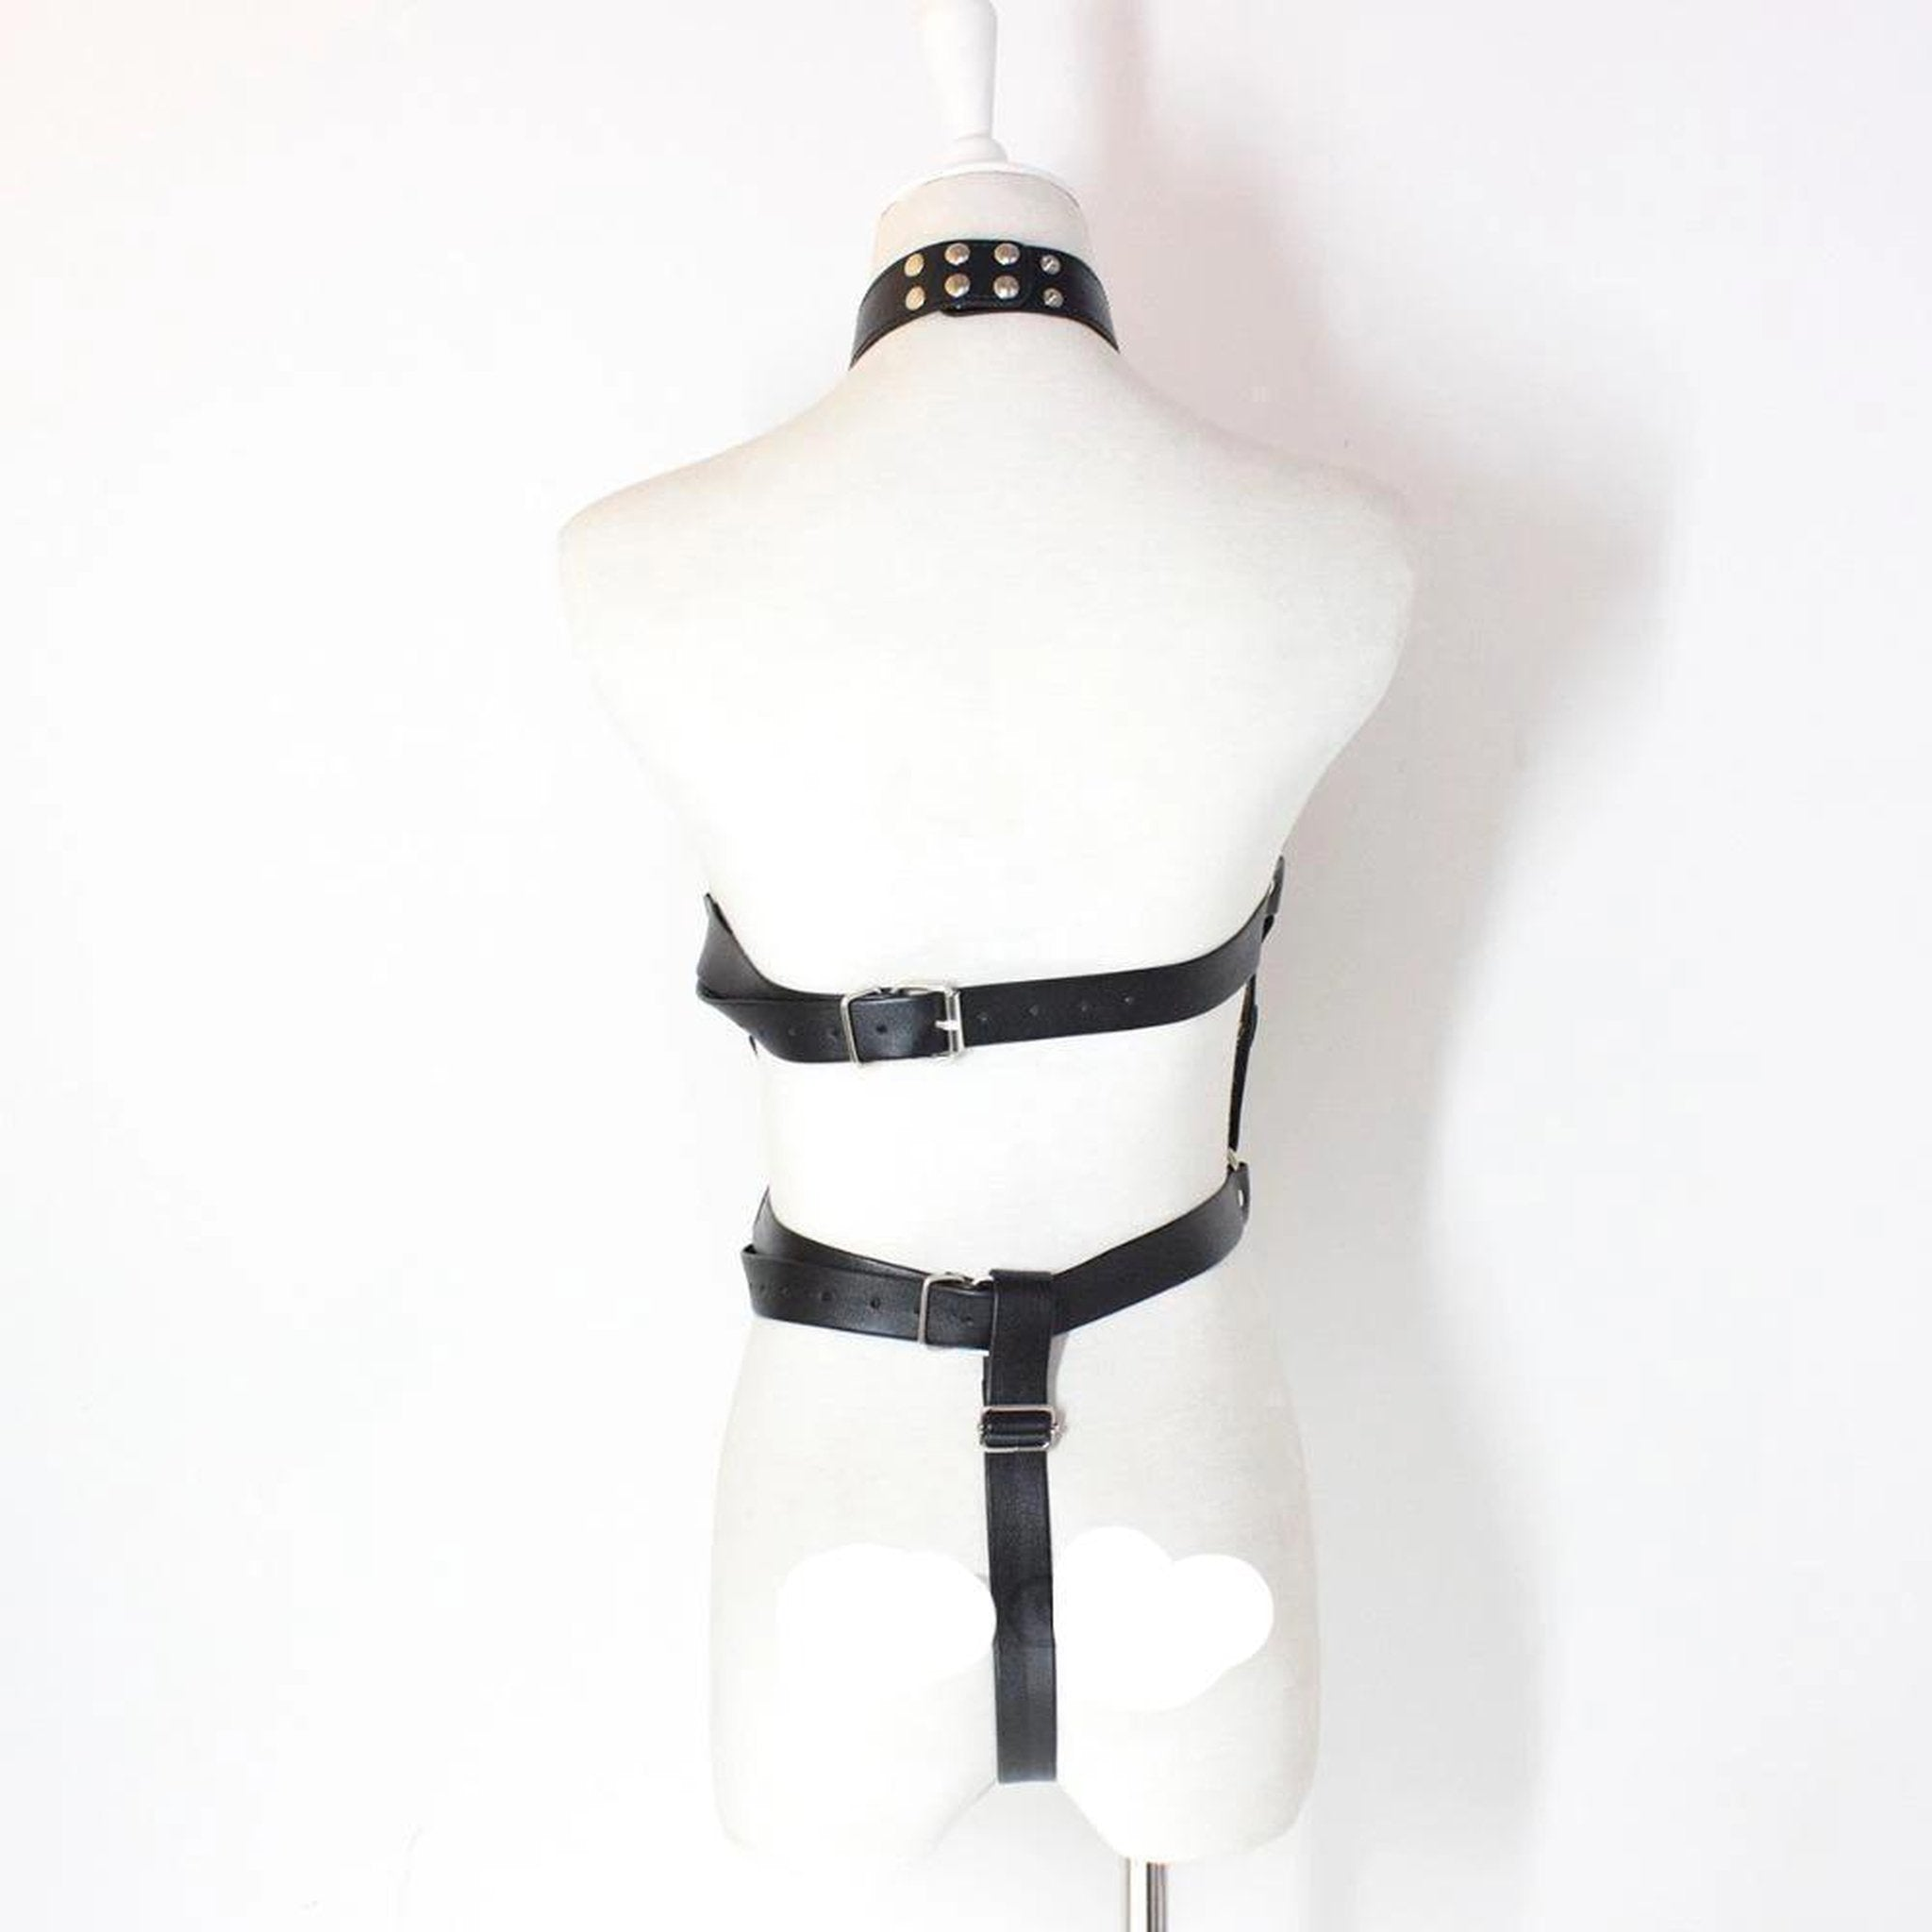 Fetish PU Leather Body Cage-Good Girl xox-B-buy-bdsm-bondage-gear-tools-toys-online-good-girl-xox